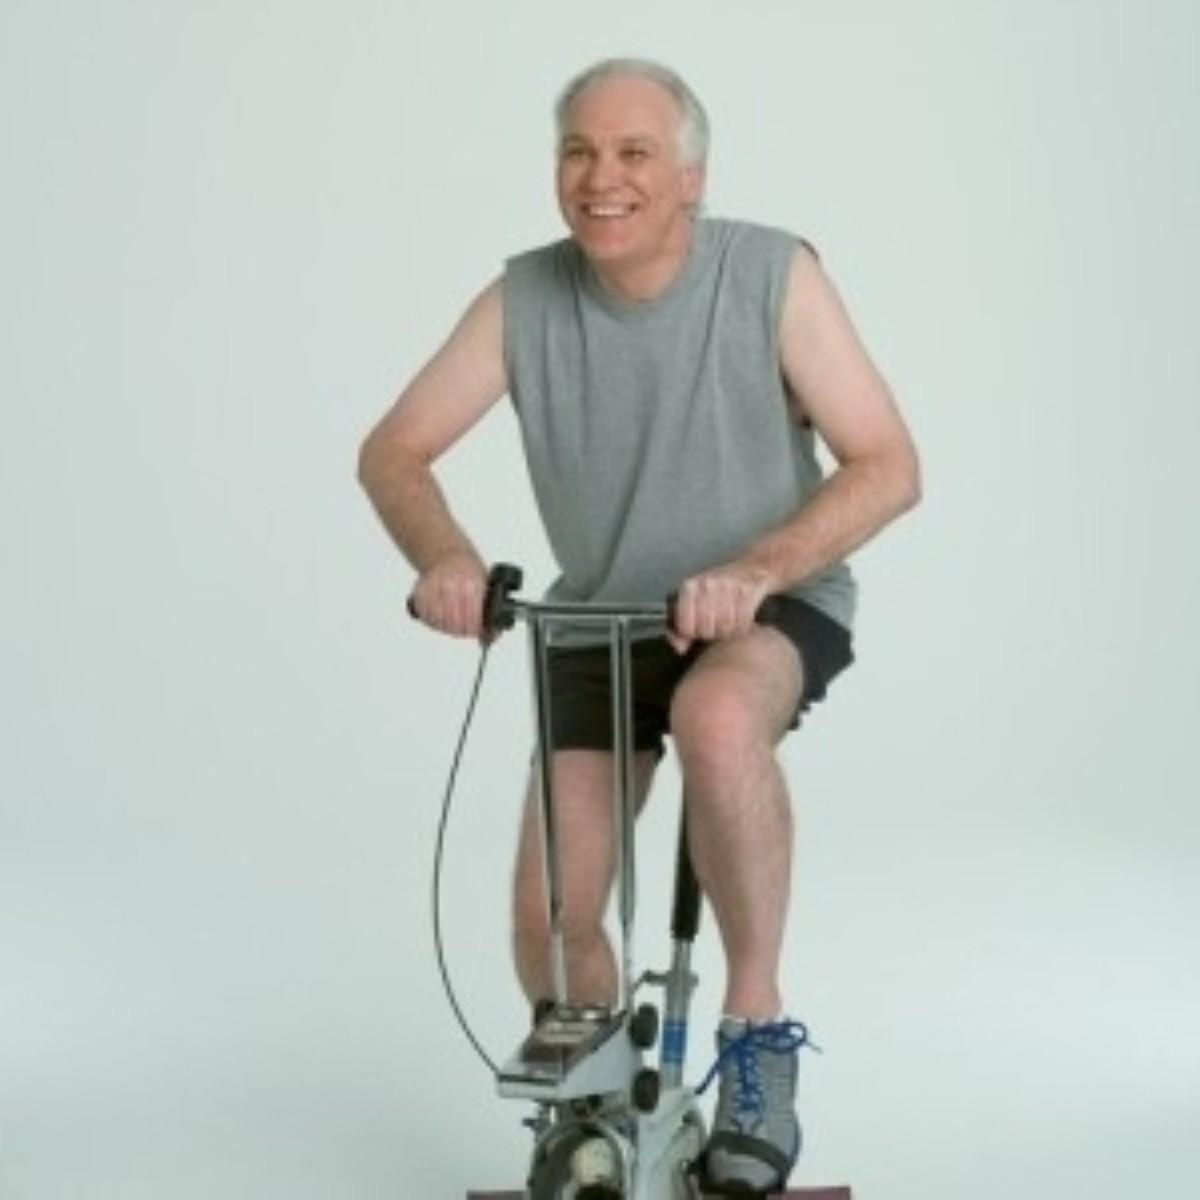 Have you joined the senior keep fit revolution?